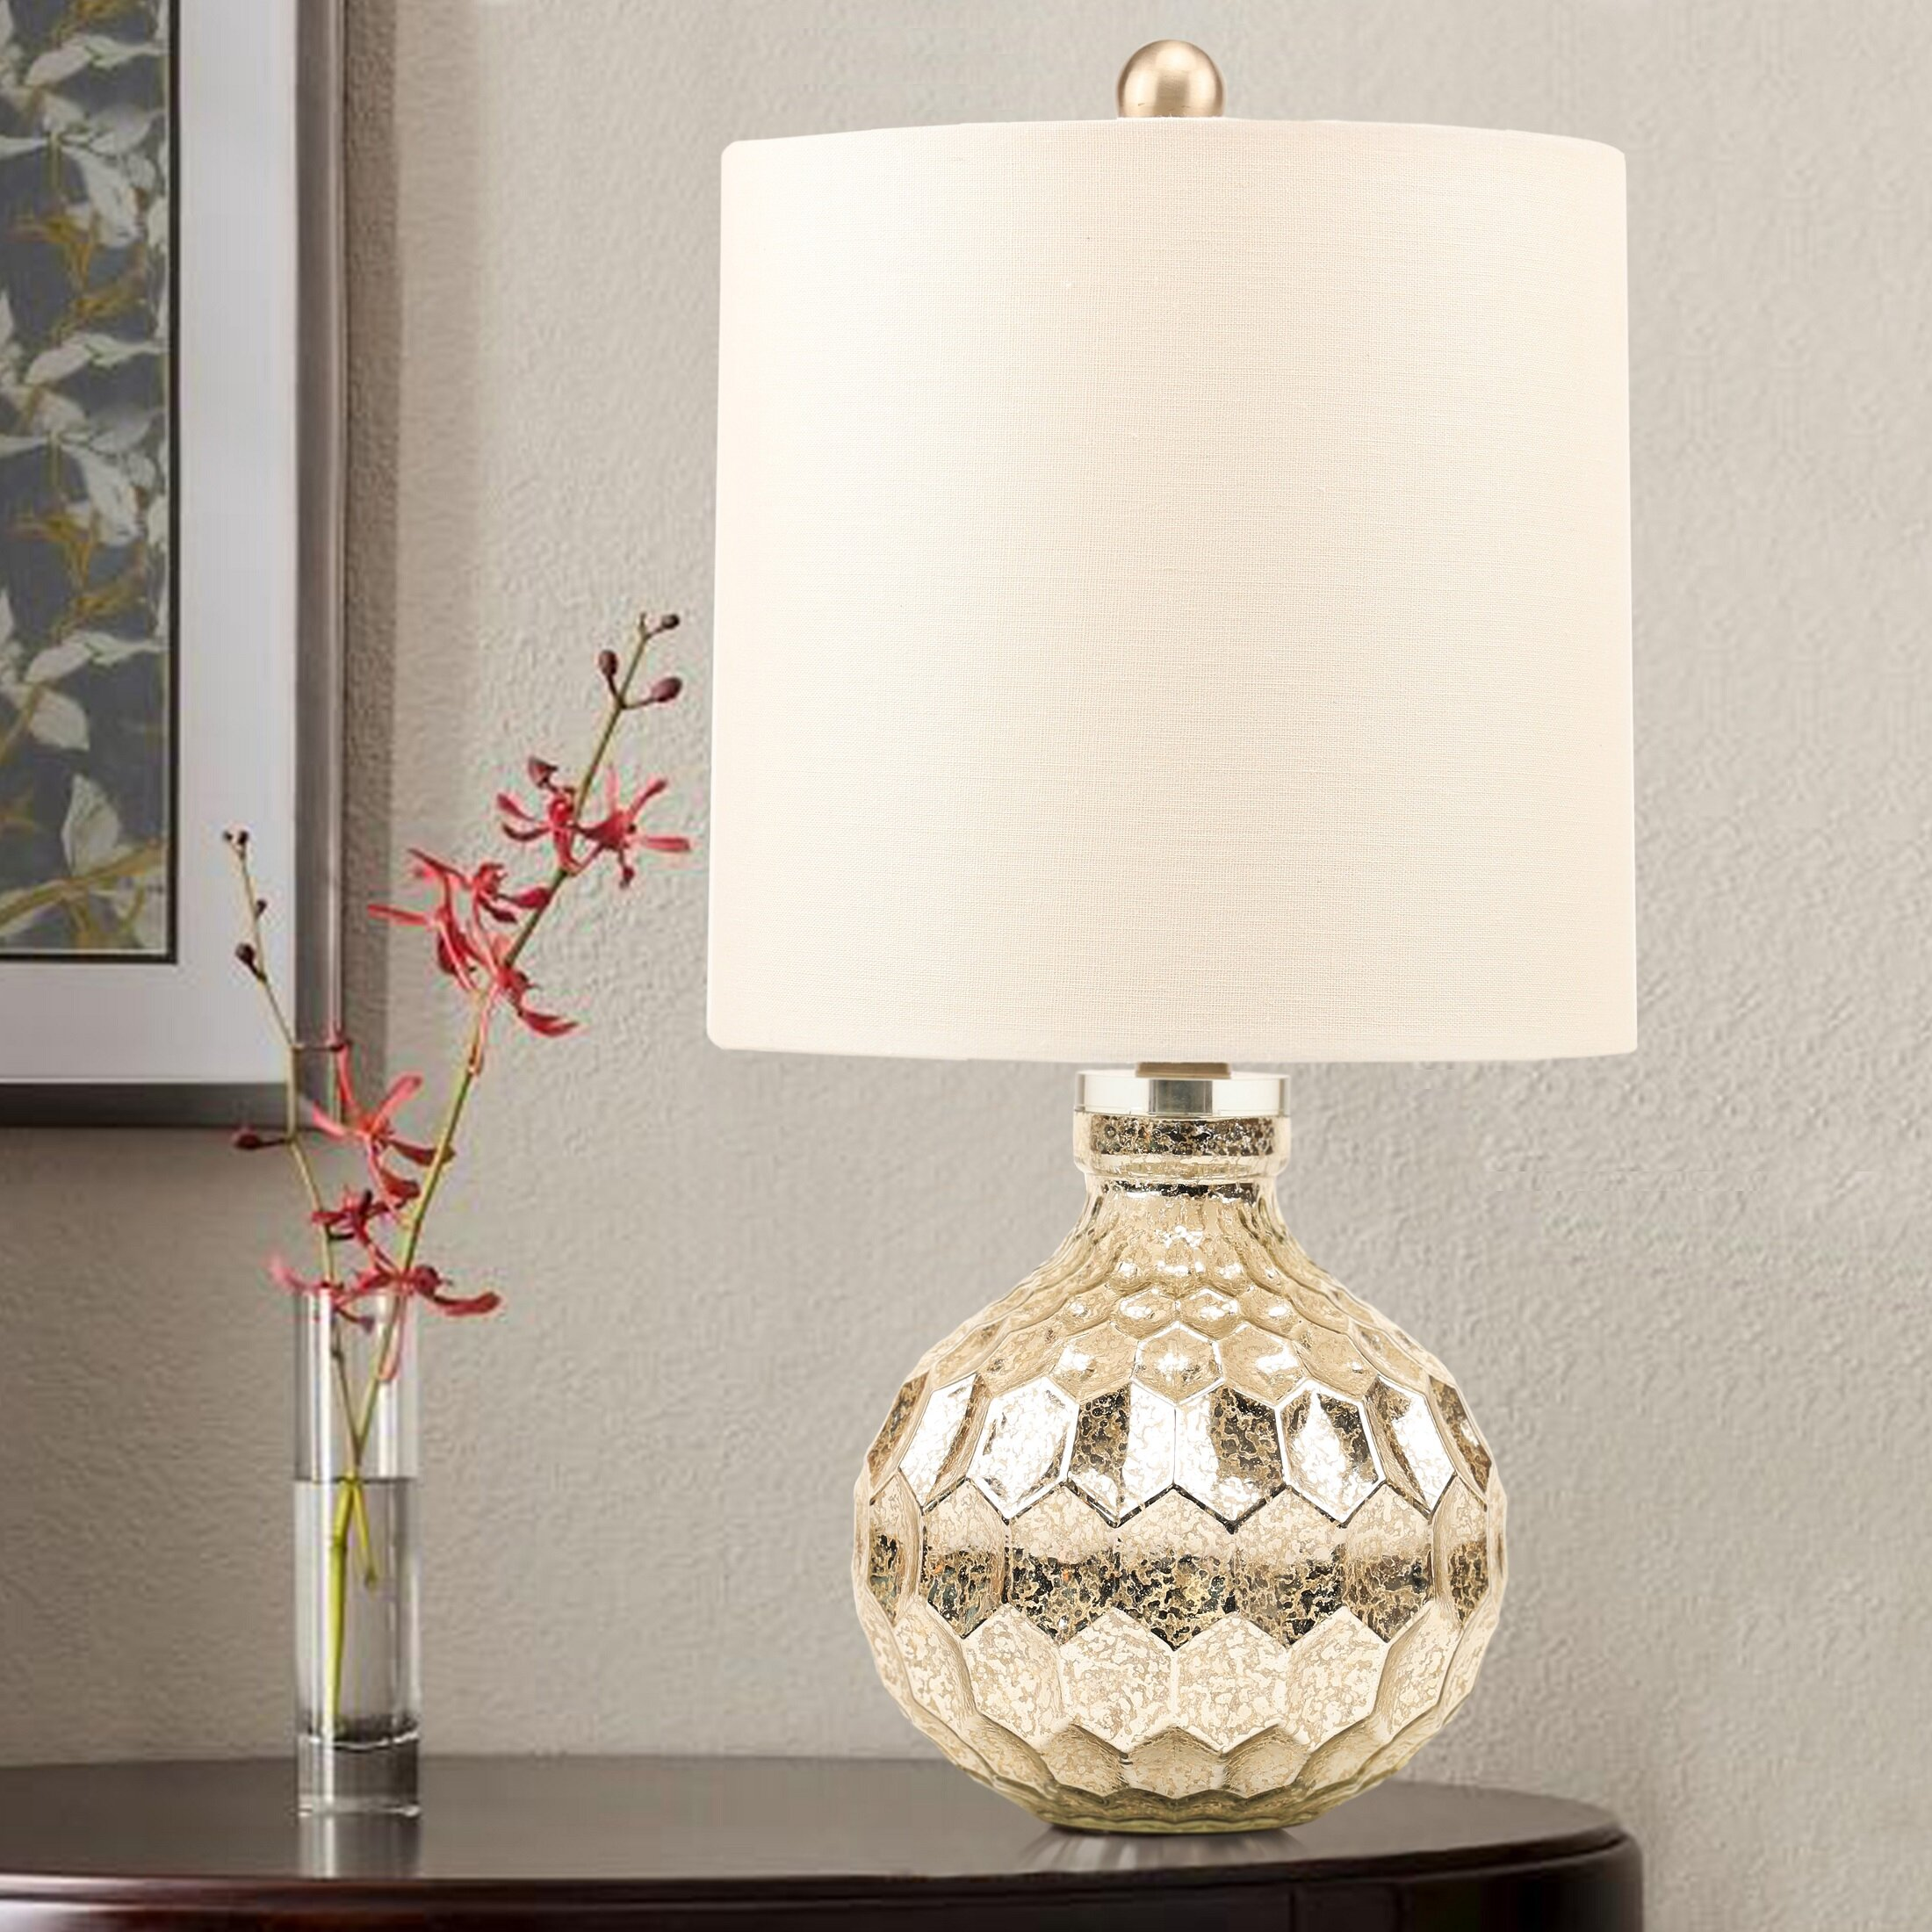 Mercer41 kersh 19 table lamp reviews wayfair